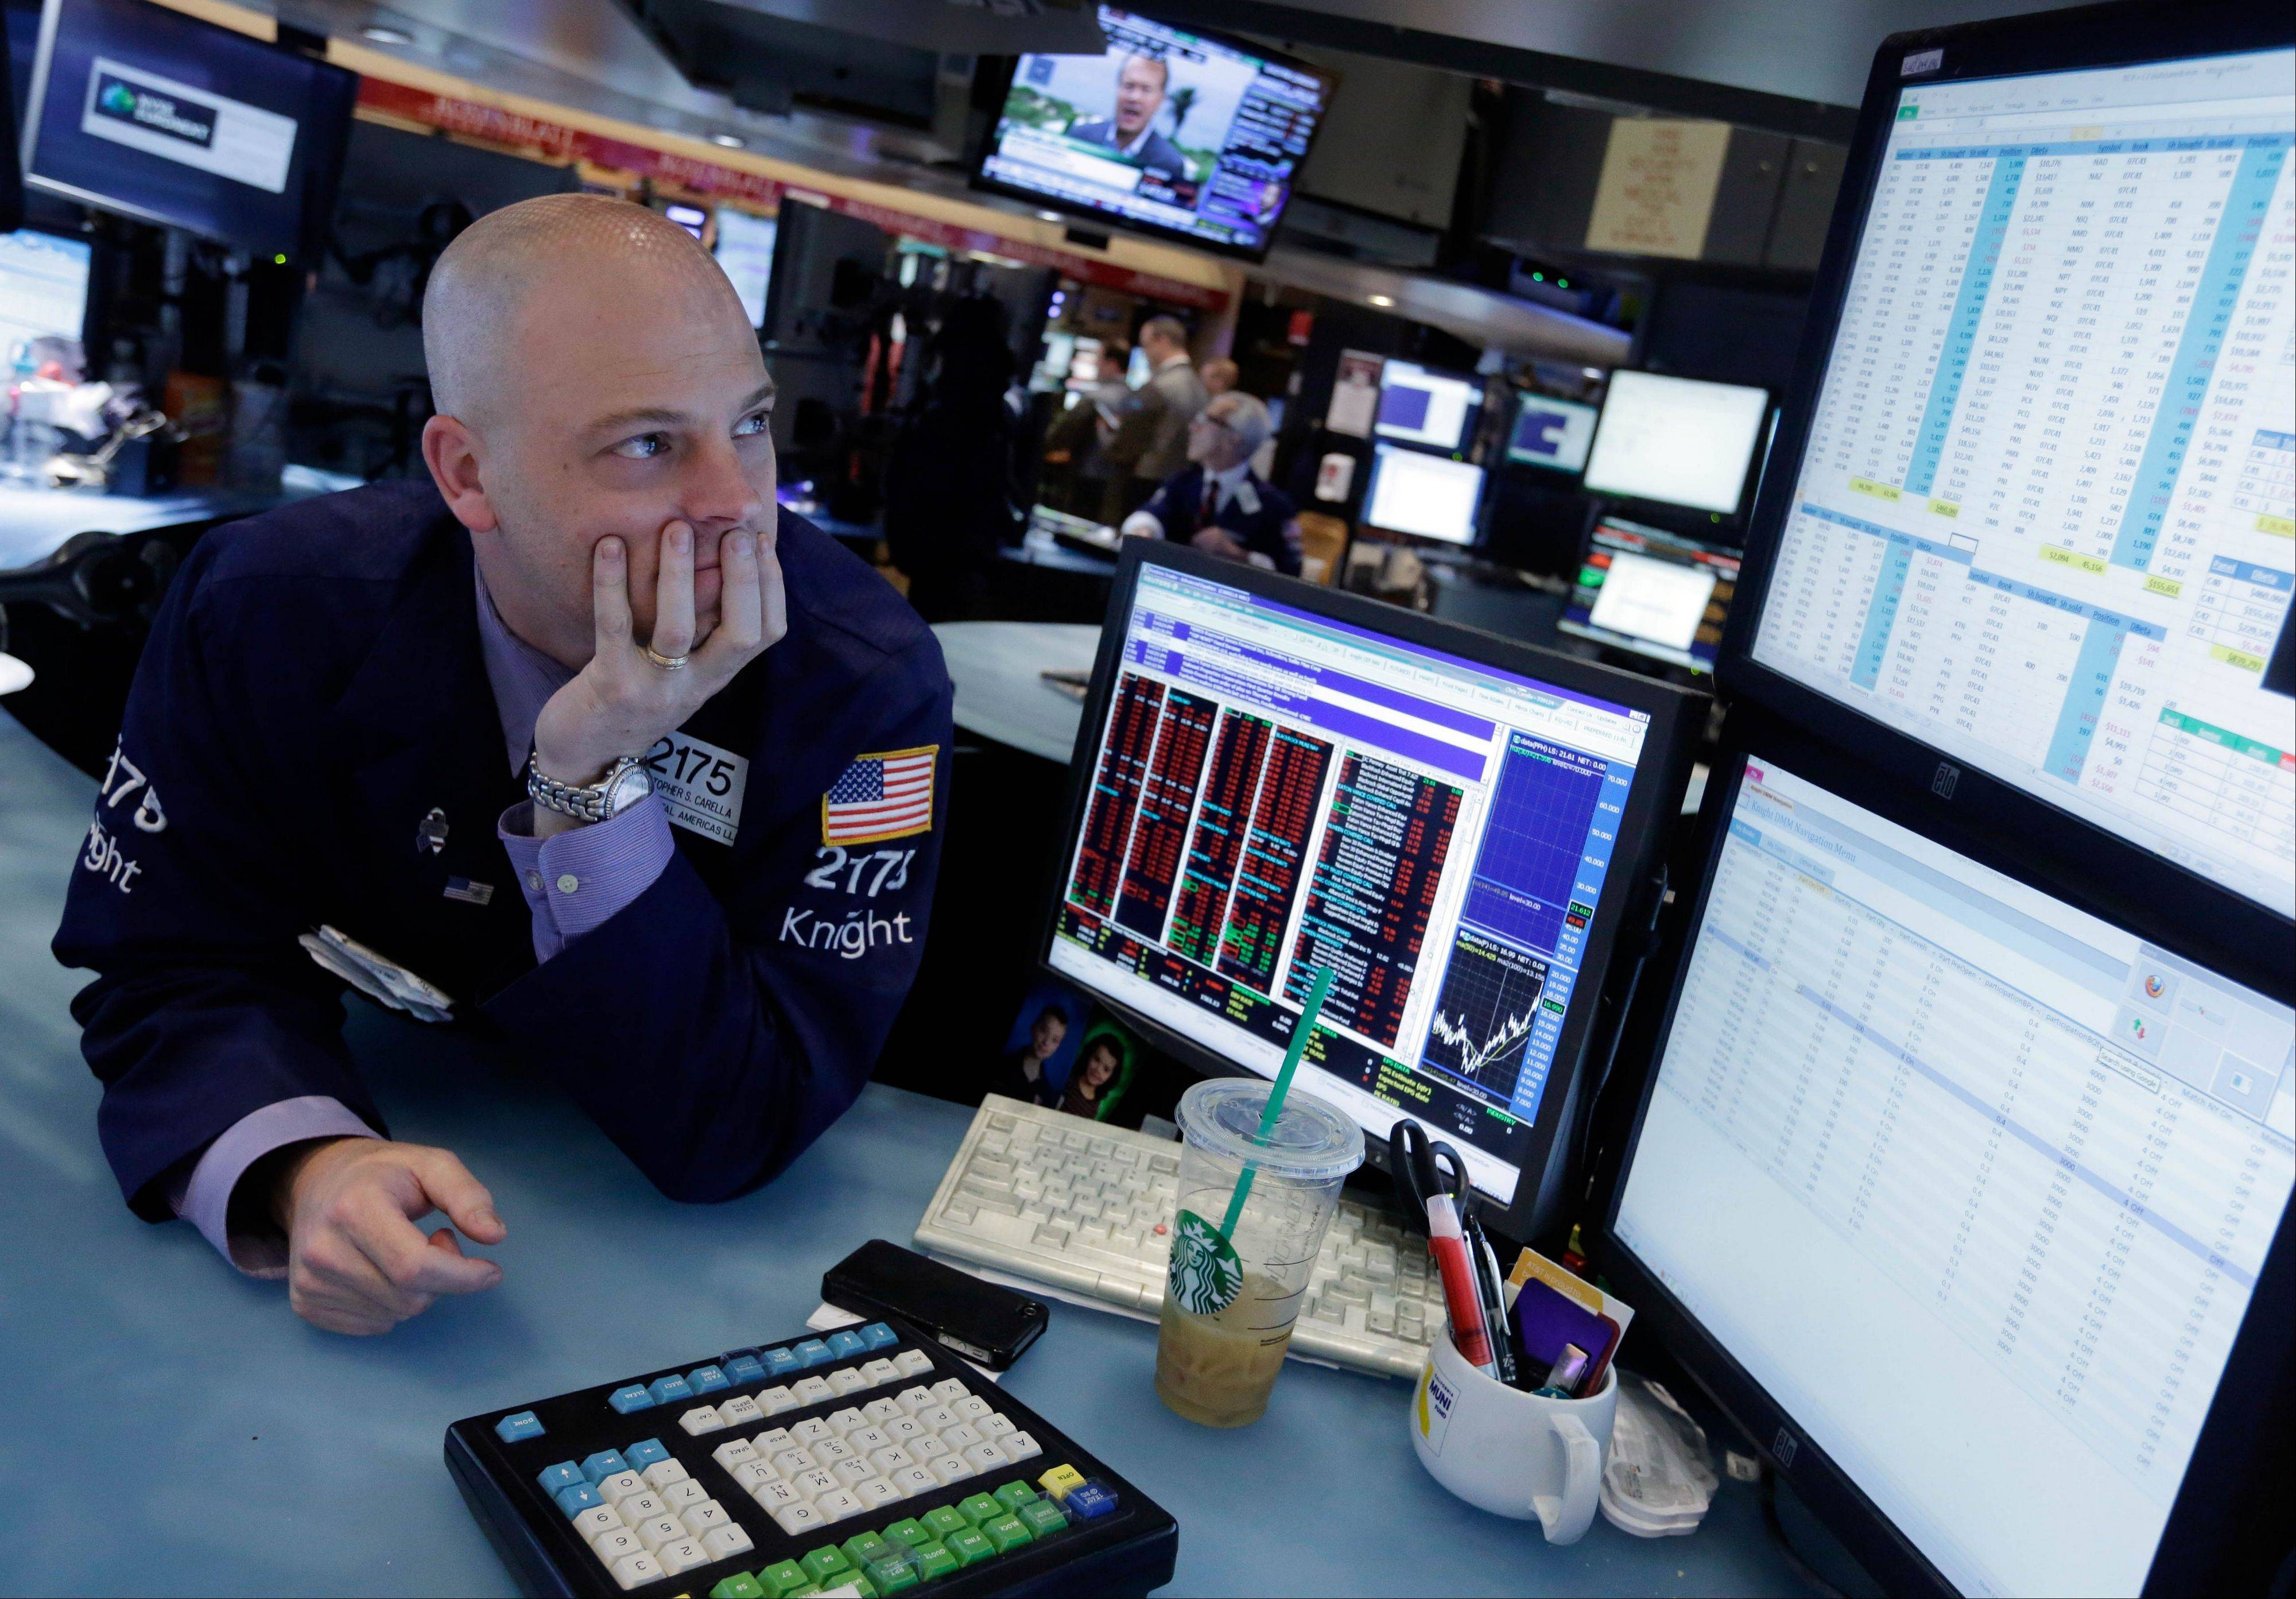 U.S. stocks fell, with the Dow Jones Industrial Average retreating from a record, amid concern that the Federal Reserve could begin to taper its debt-buying program as the economy continues to improve.